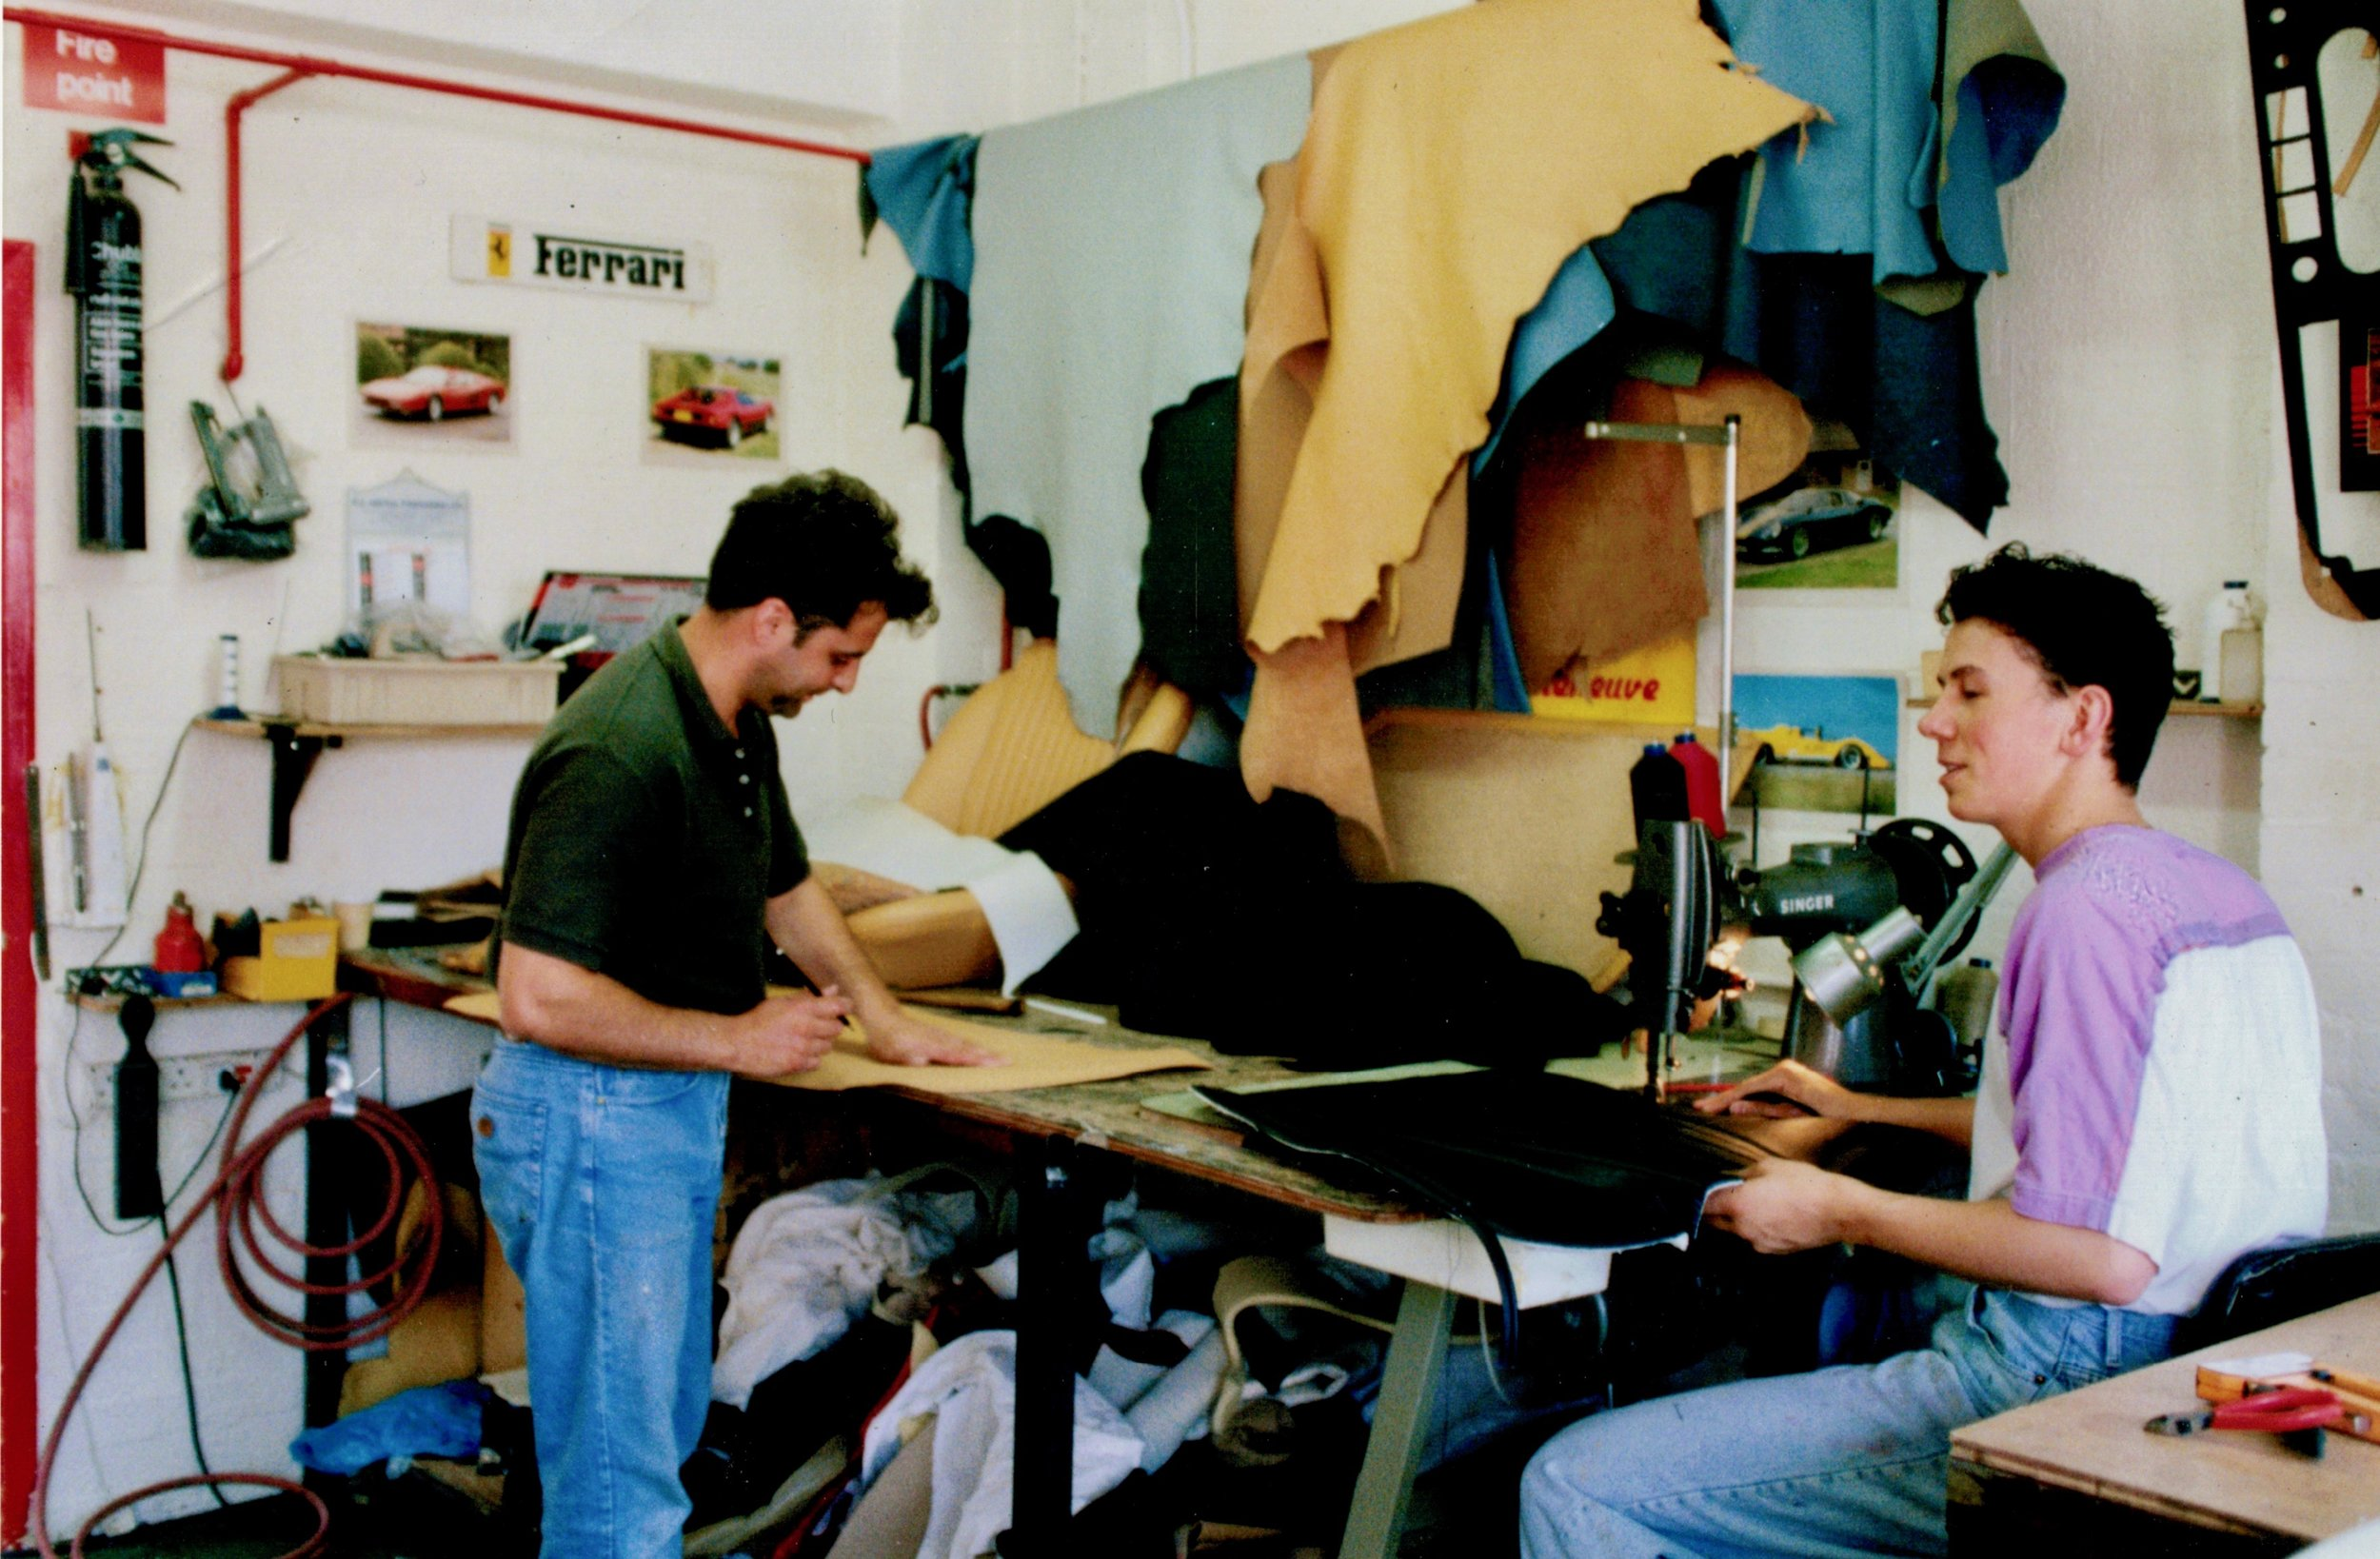 Nick and Rorky in their snug trim shop.